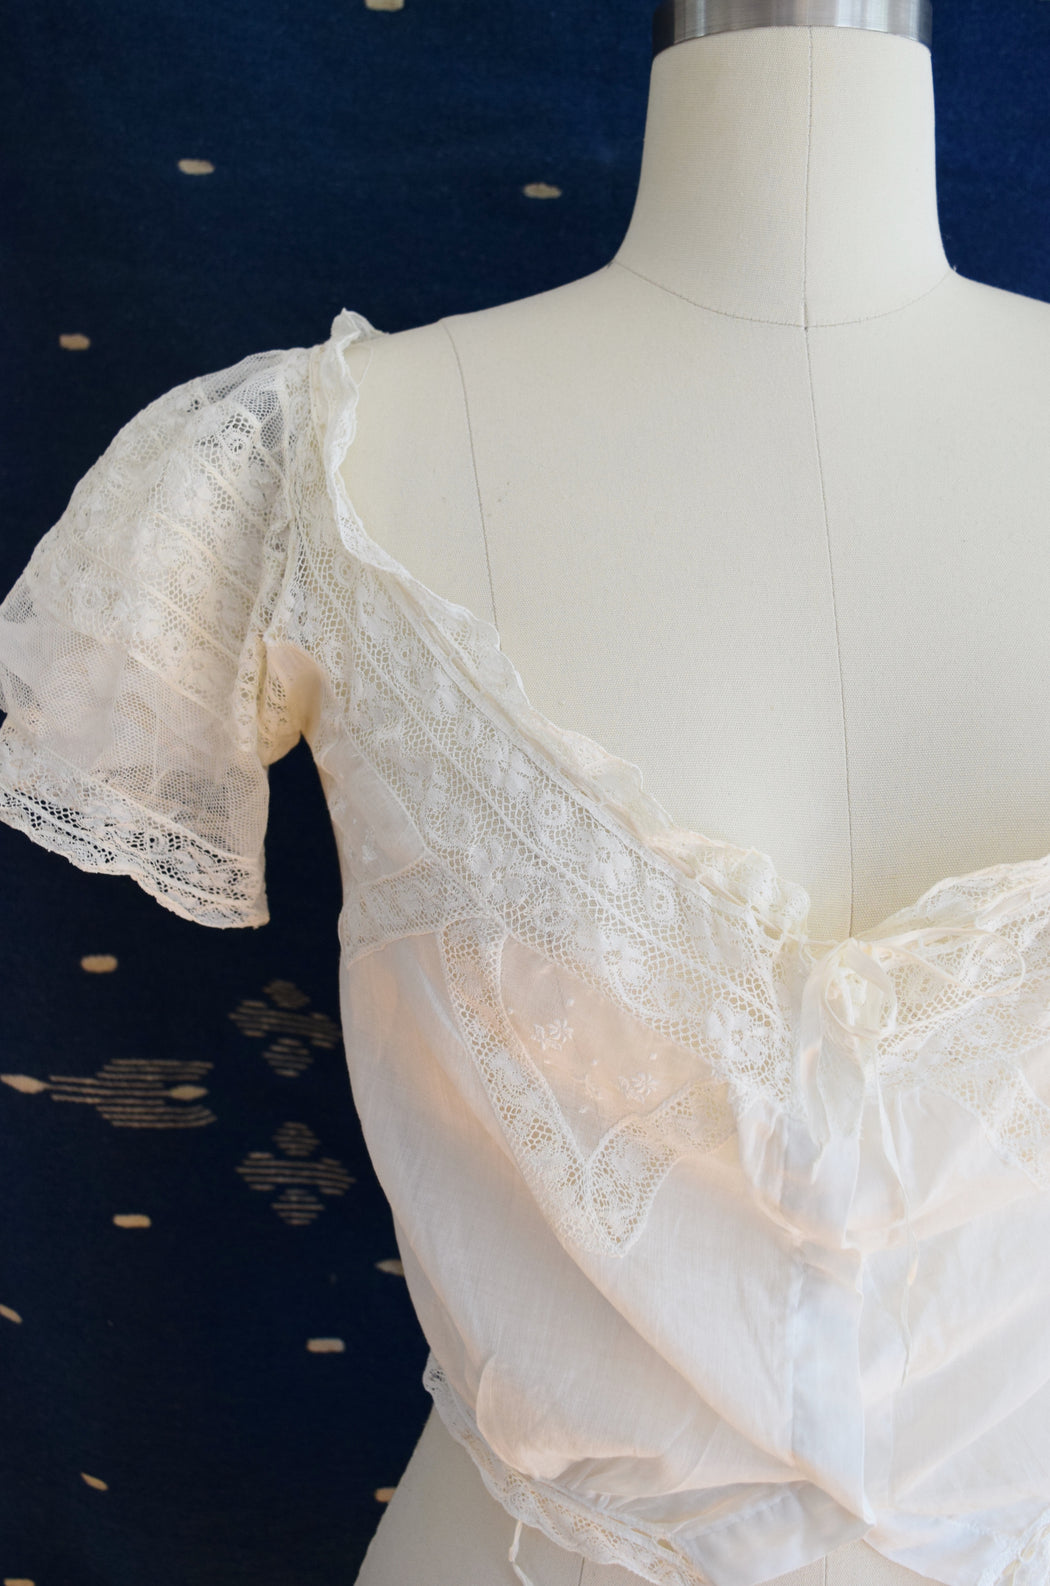 Antique Cotton and Lace Blouse | Corset Cover